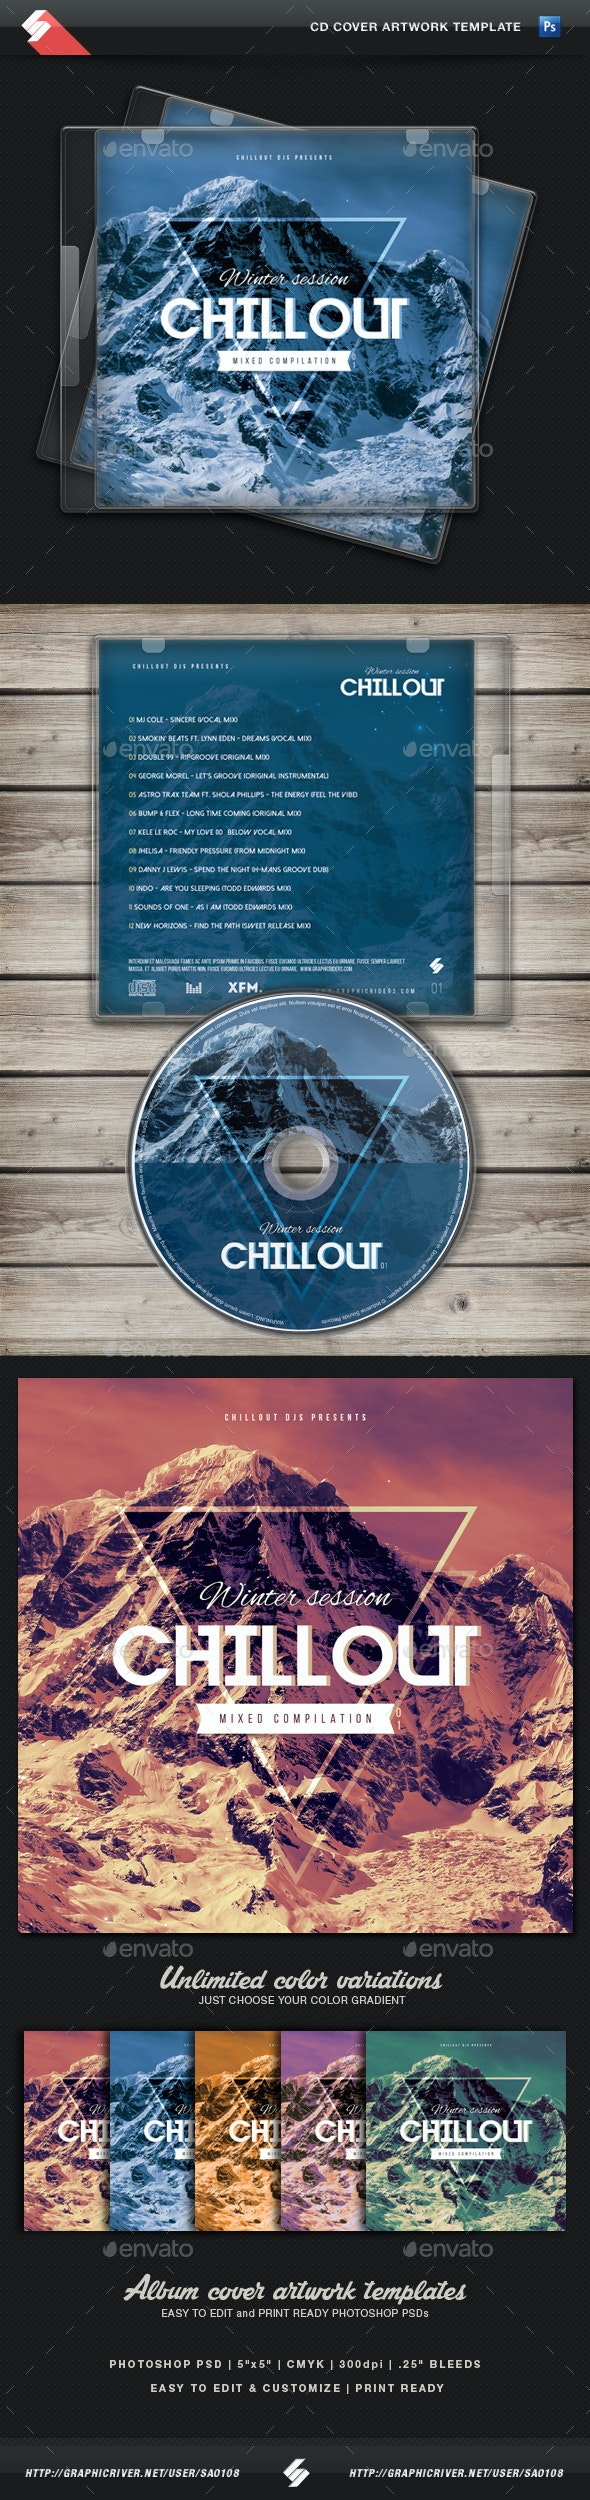 Winter Chillout - CD Cover Artwork Template - CD & DVD Artwork Print Templates